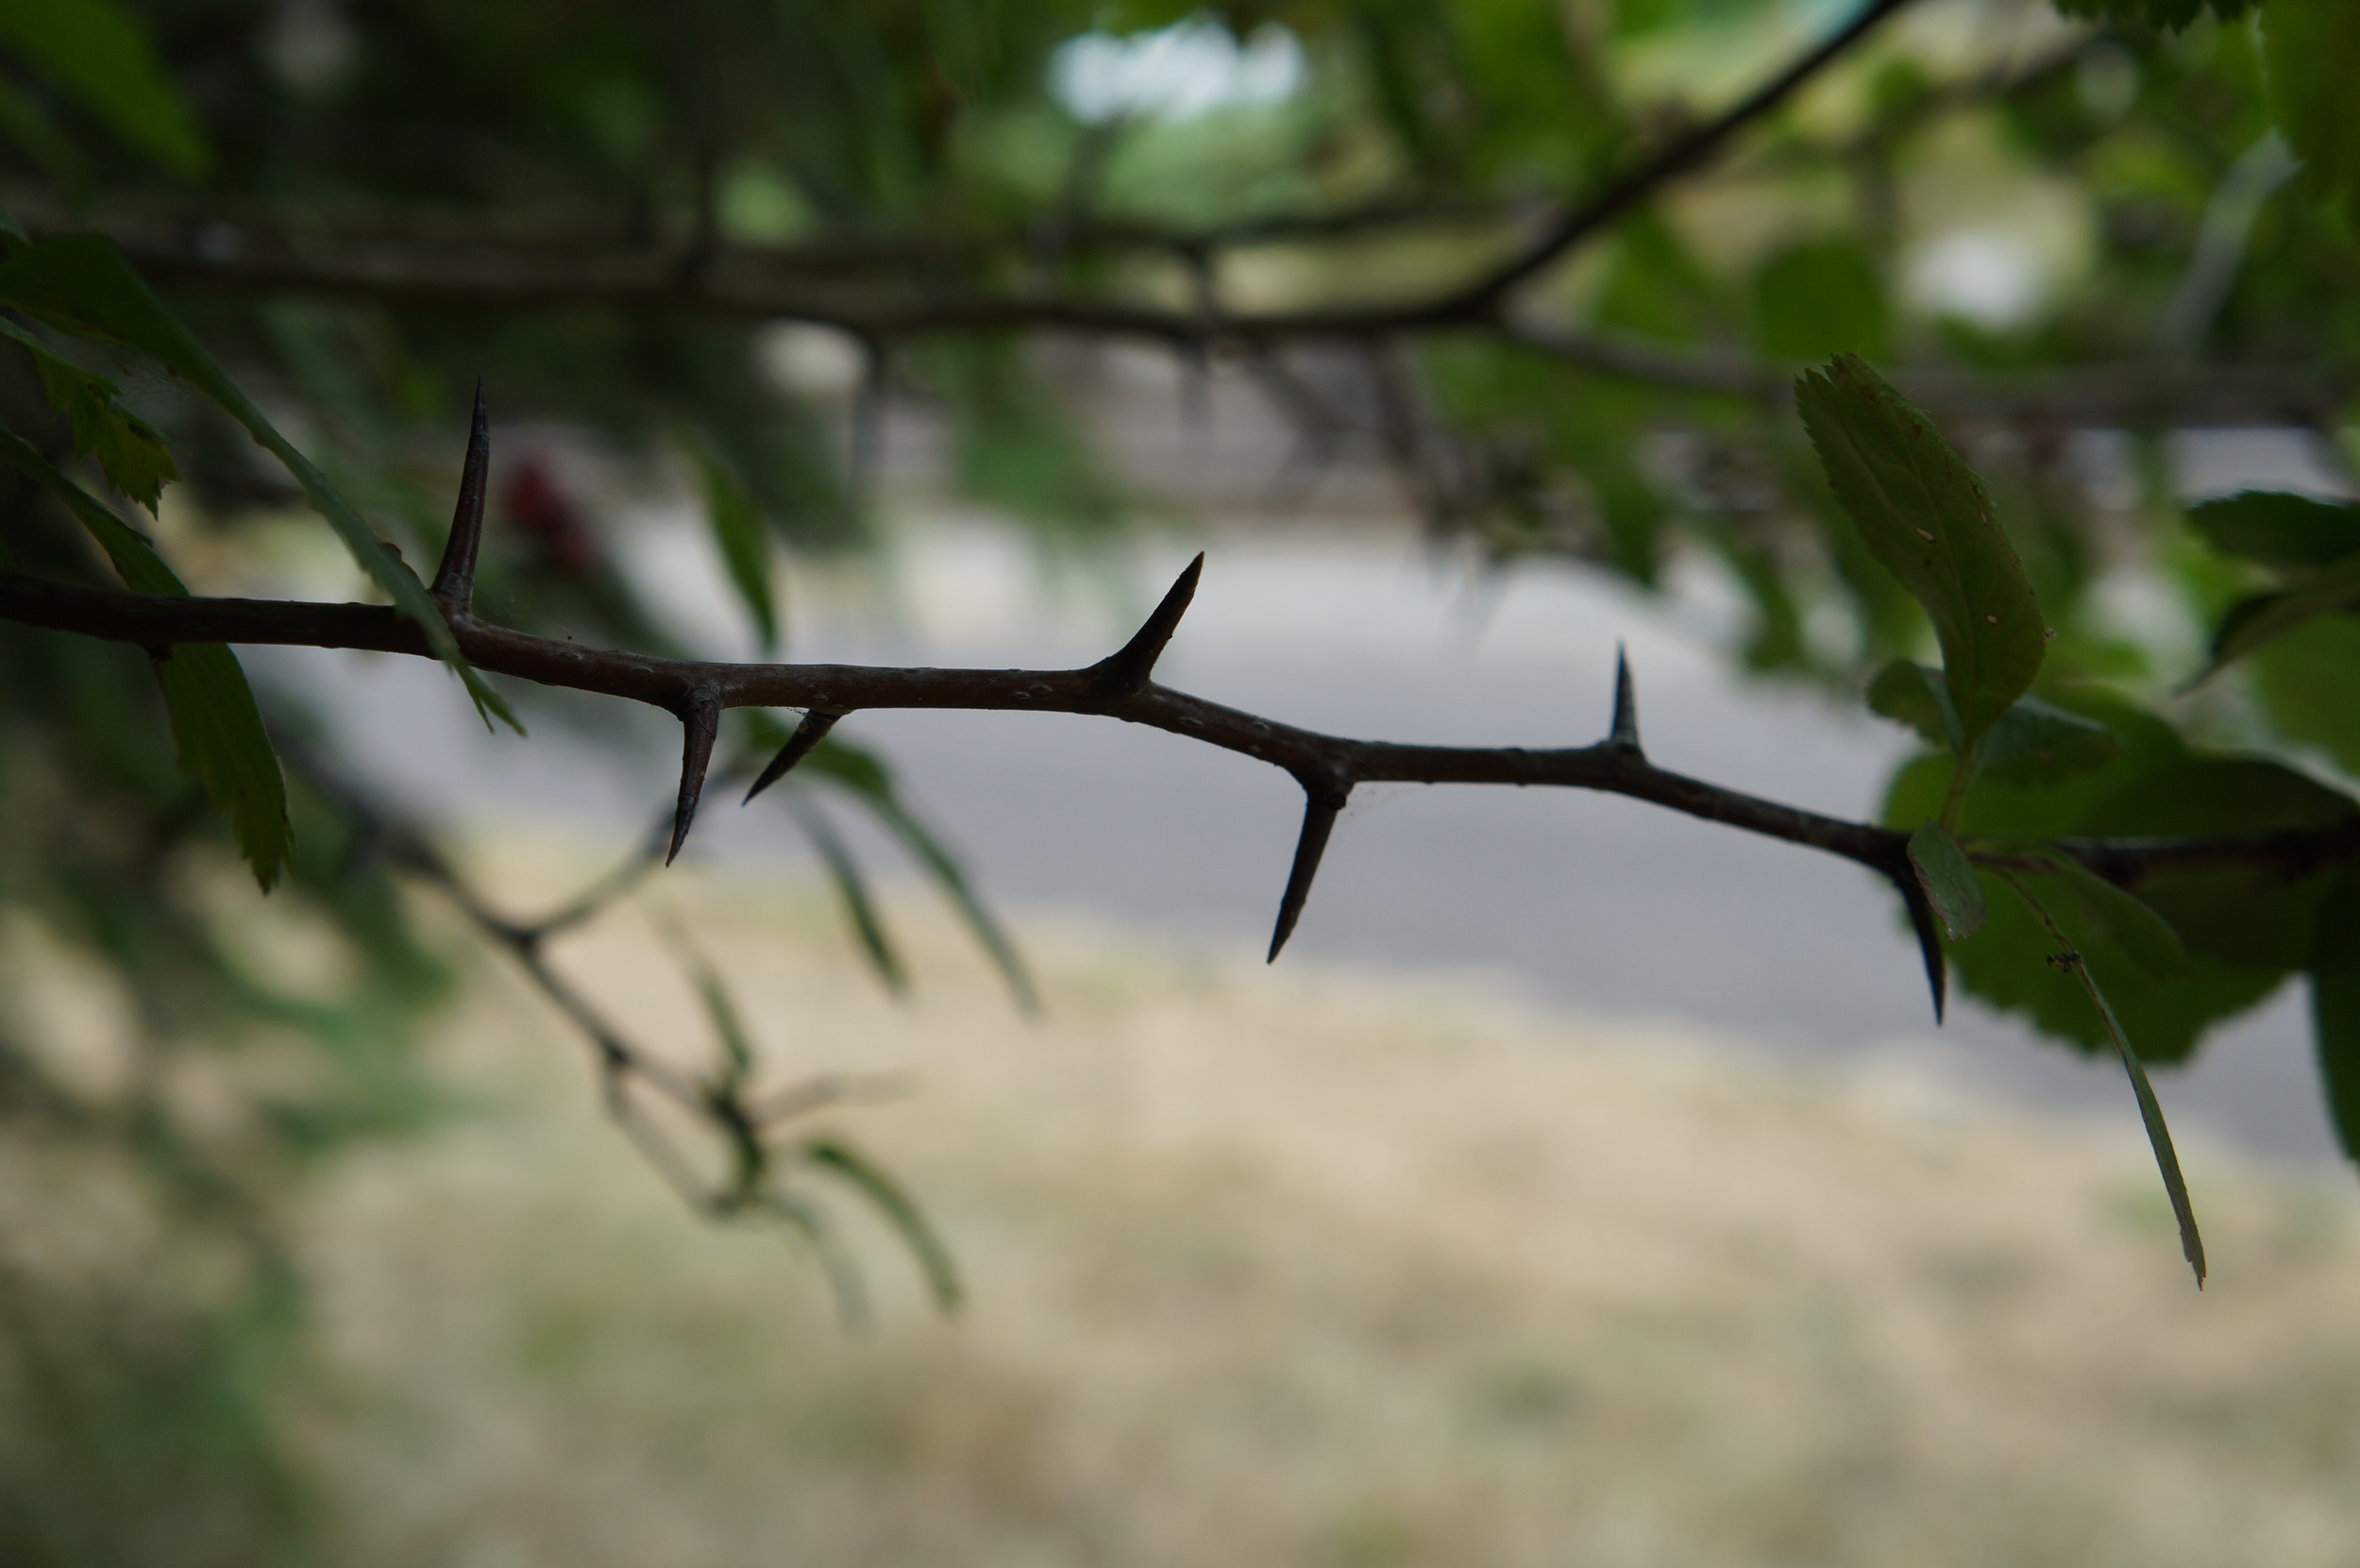 Native  Crataegus Douglasii / Douglas' hawthorn has some wicked thorns (as does the noxious sp.)